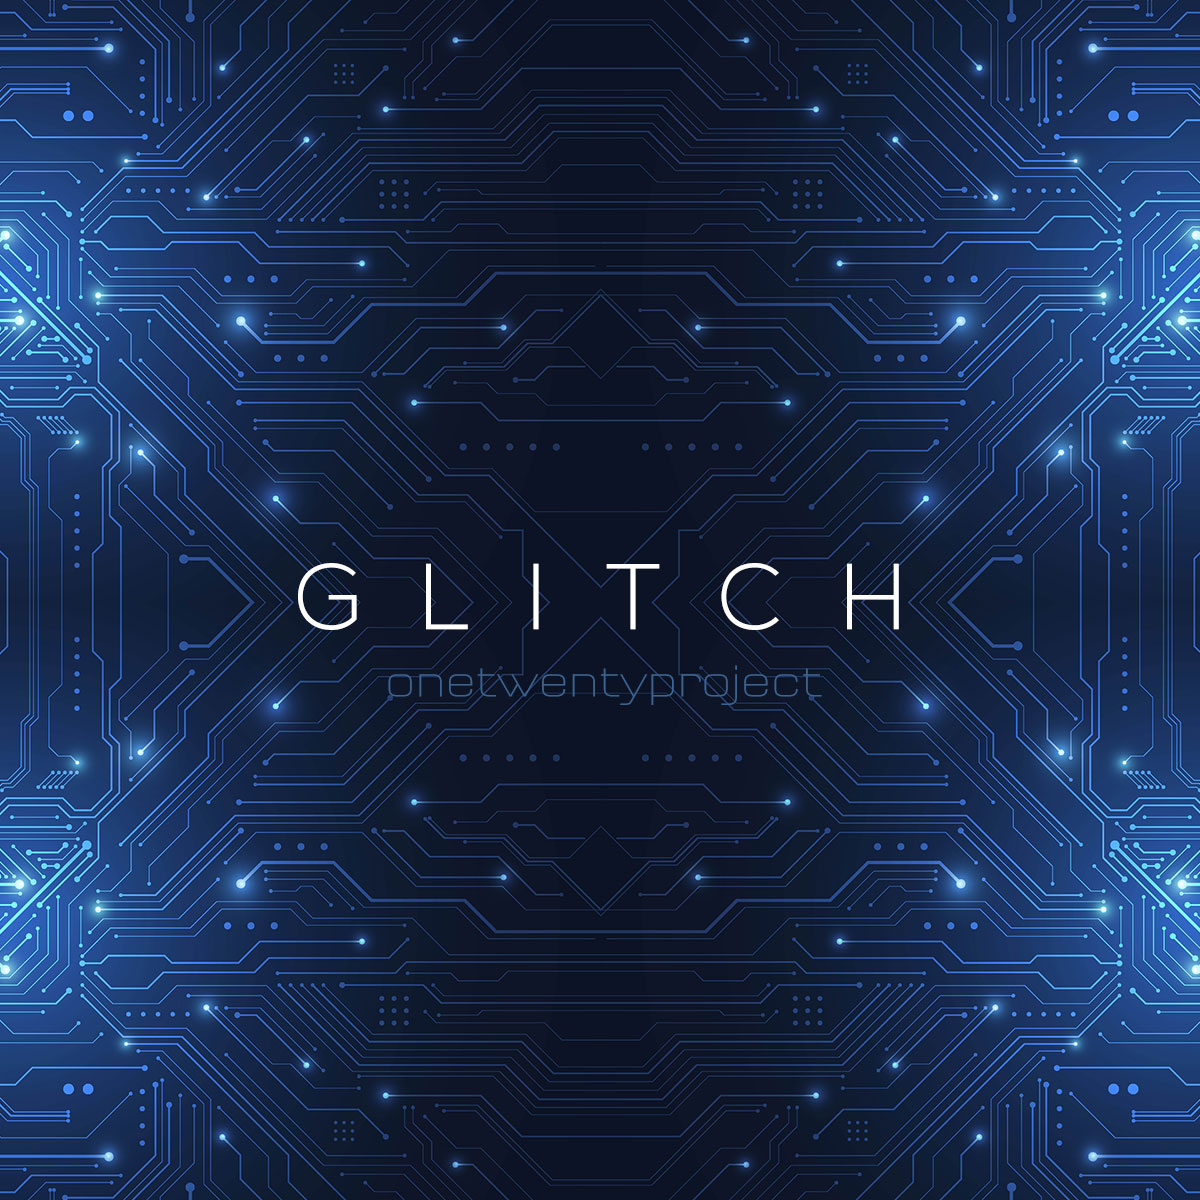 New track Glitch by 120 Project